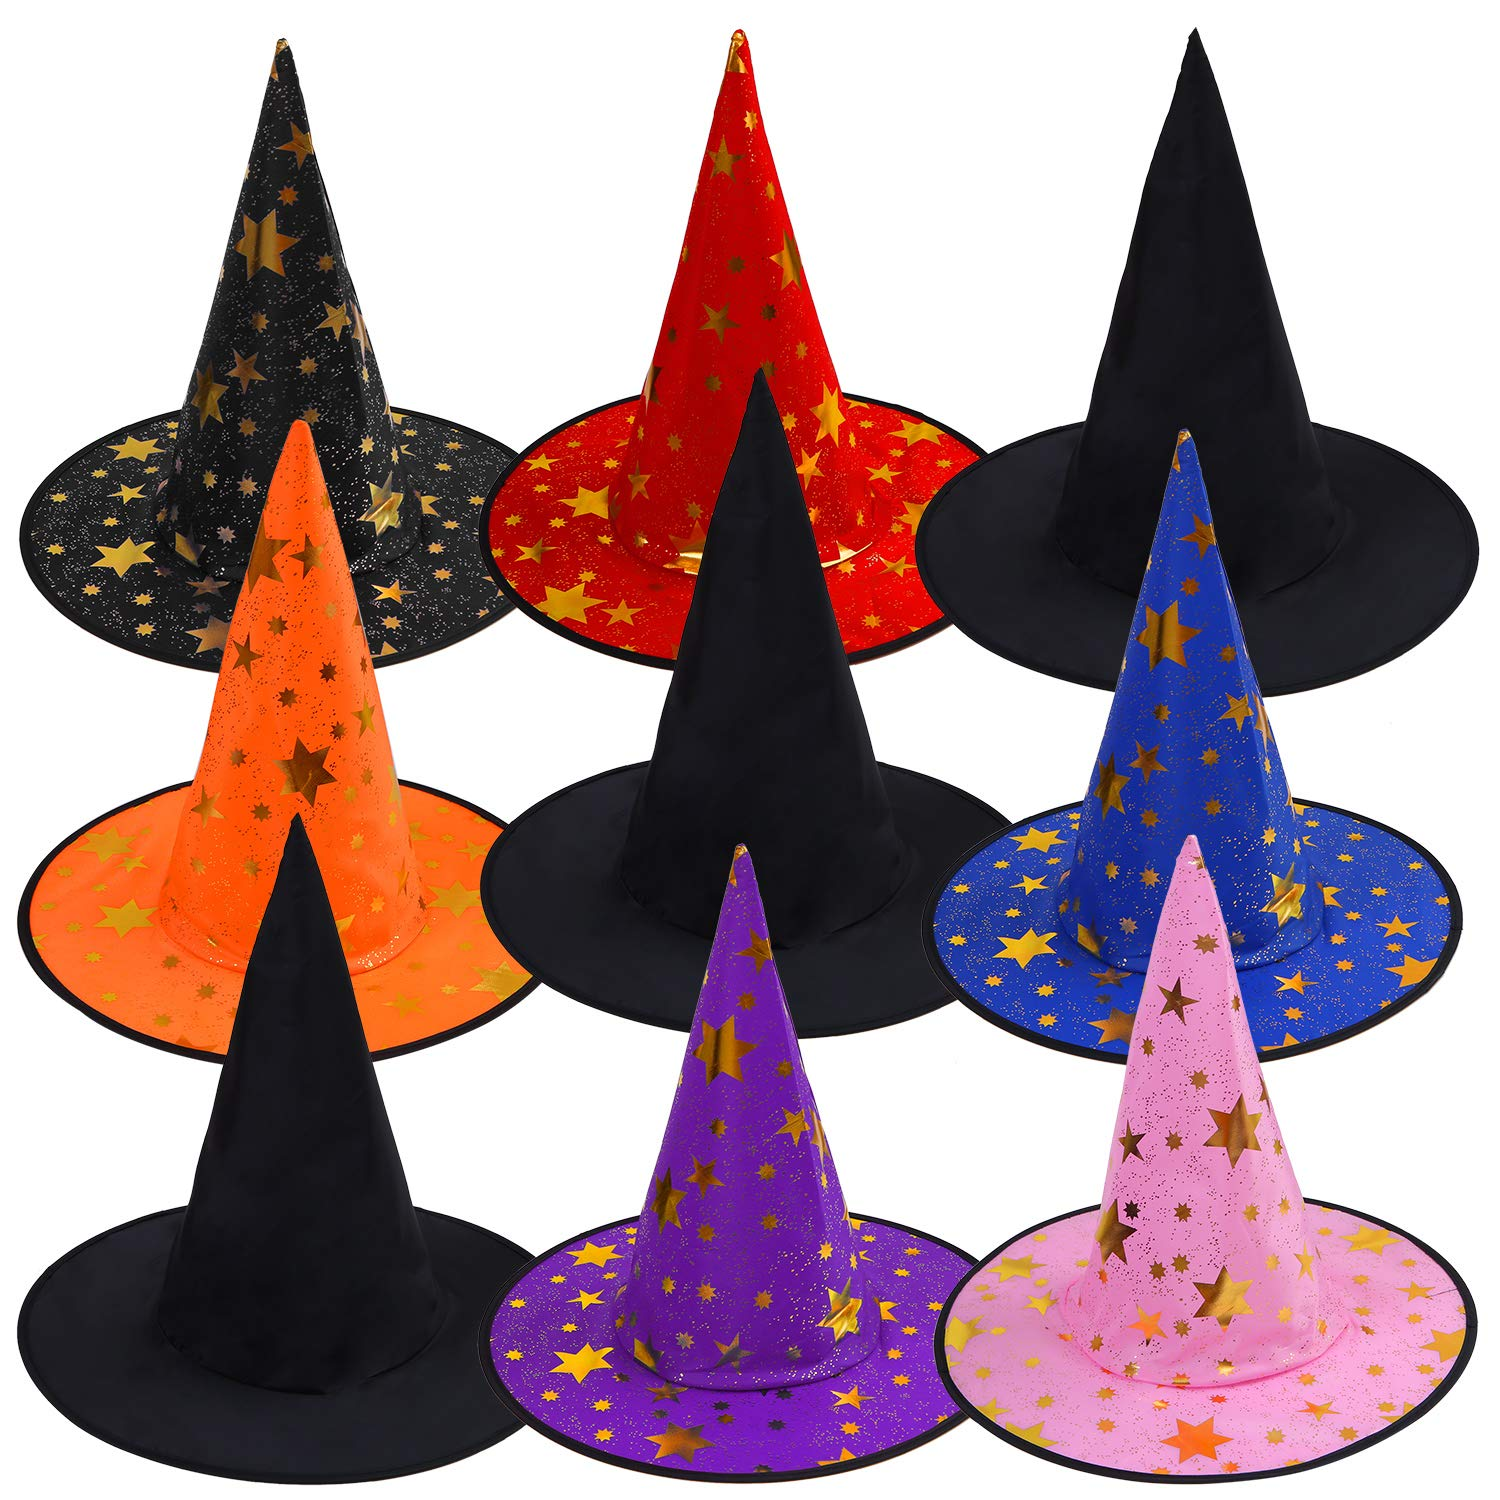 Aneco 9 Pieces Novelty Halloween Witch Hat Halloween Witch Costume Accessory for Halloween Cosplay Favors or Party Yard Decoration by Aneco